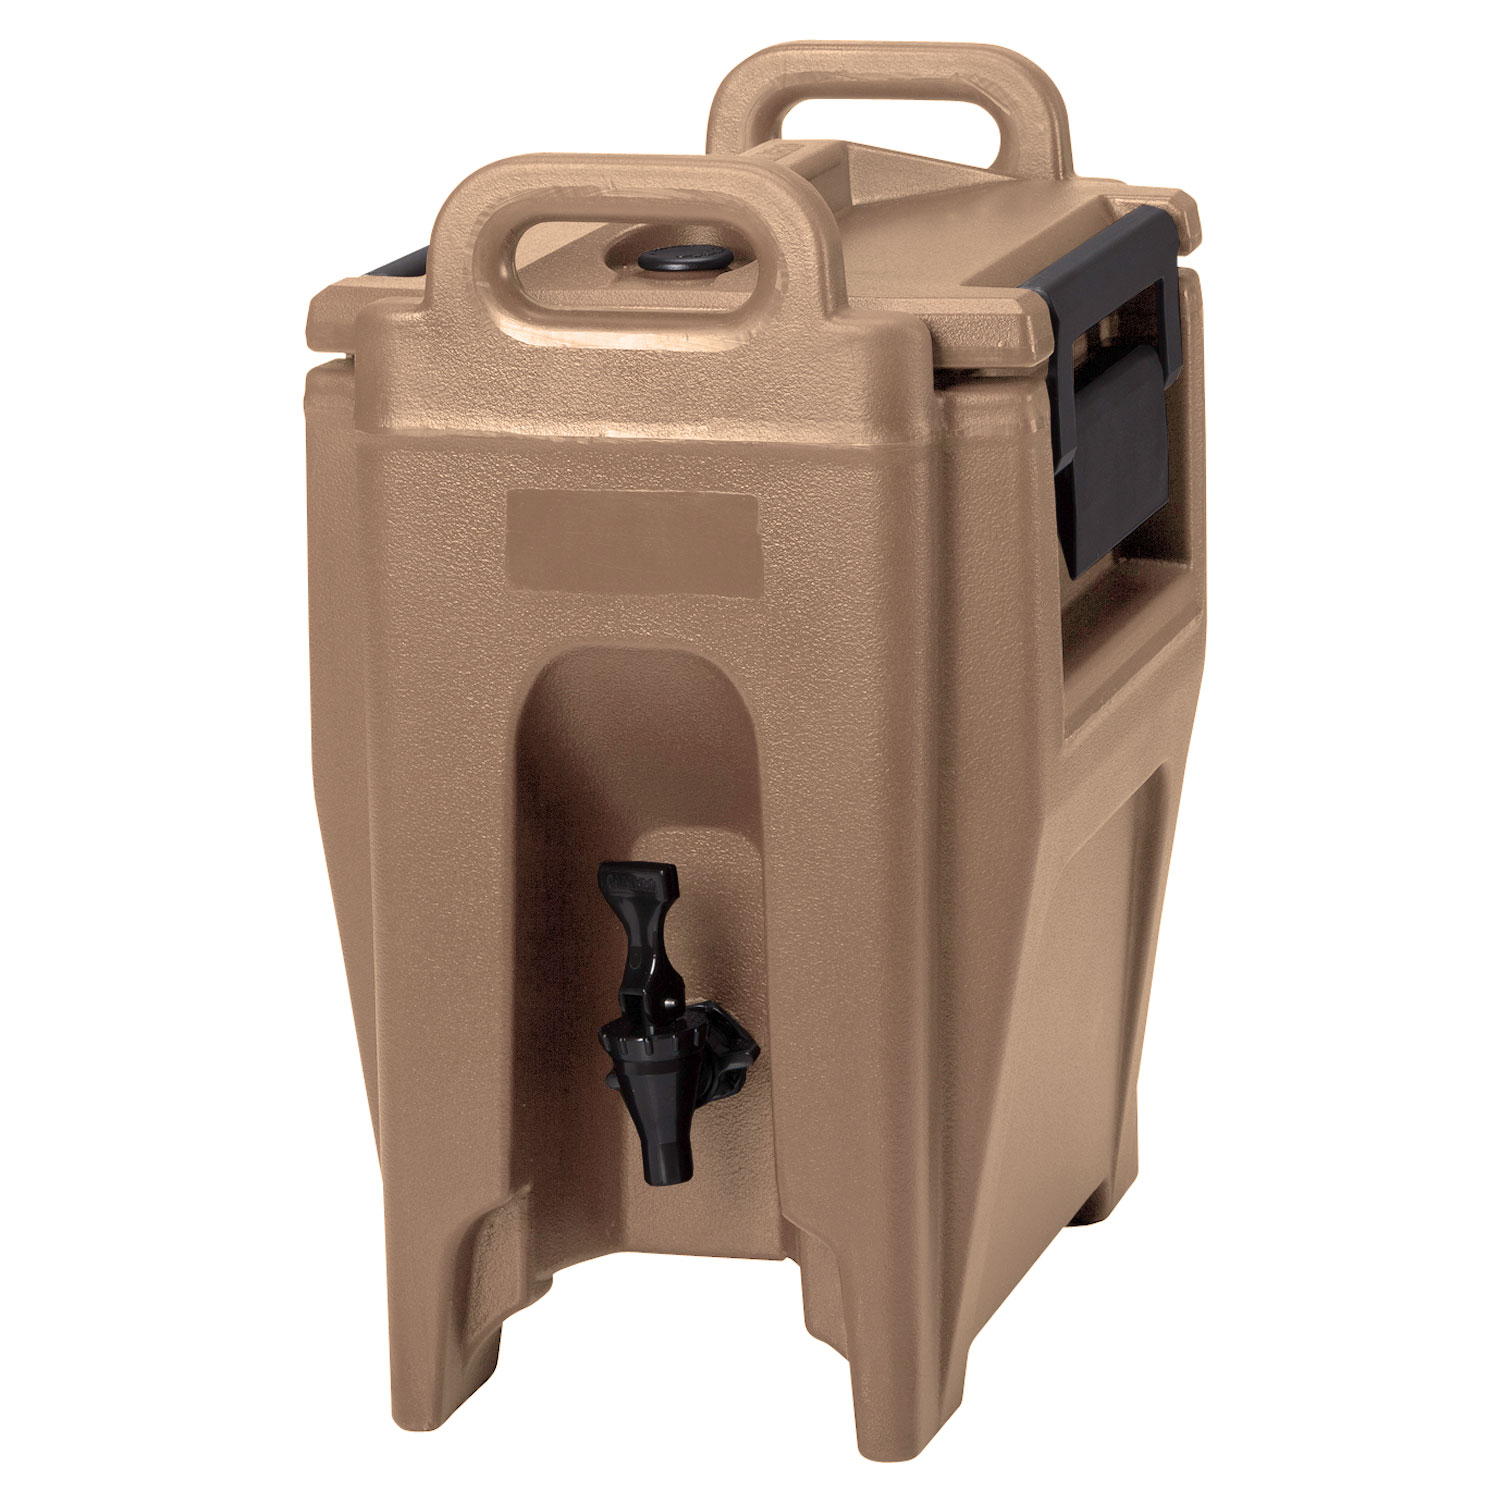 Cambro UC250157 2-3/4-gal Ultra Camtainer Beverage Carrier - Insulated, Coffee Beige